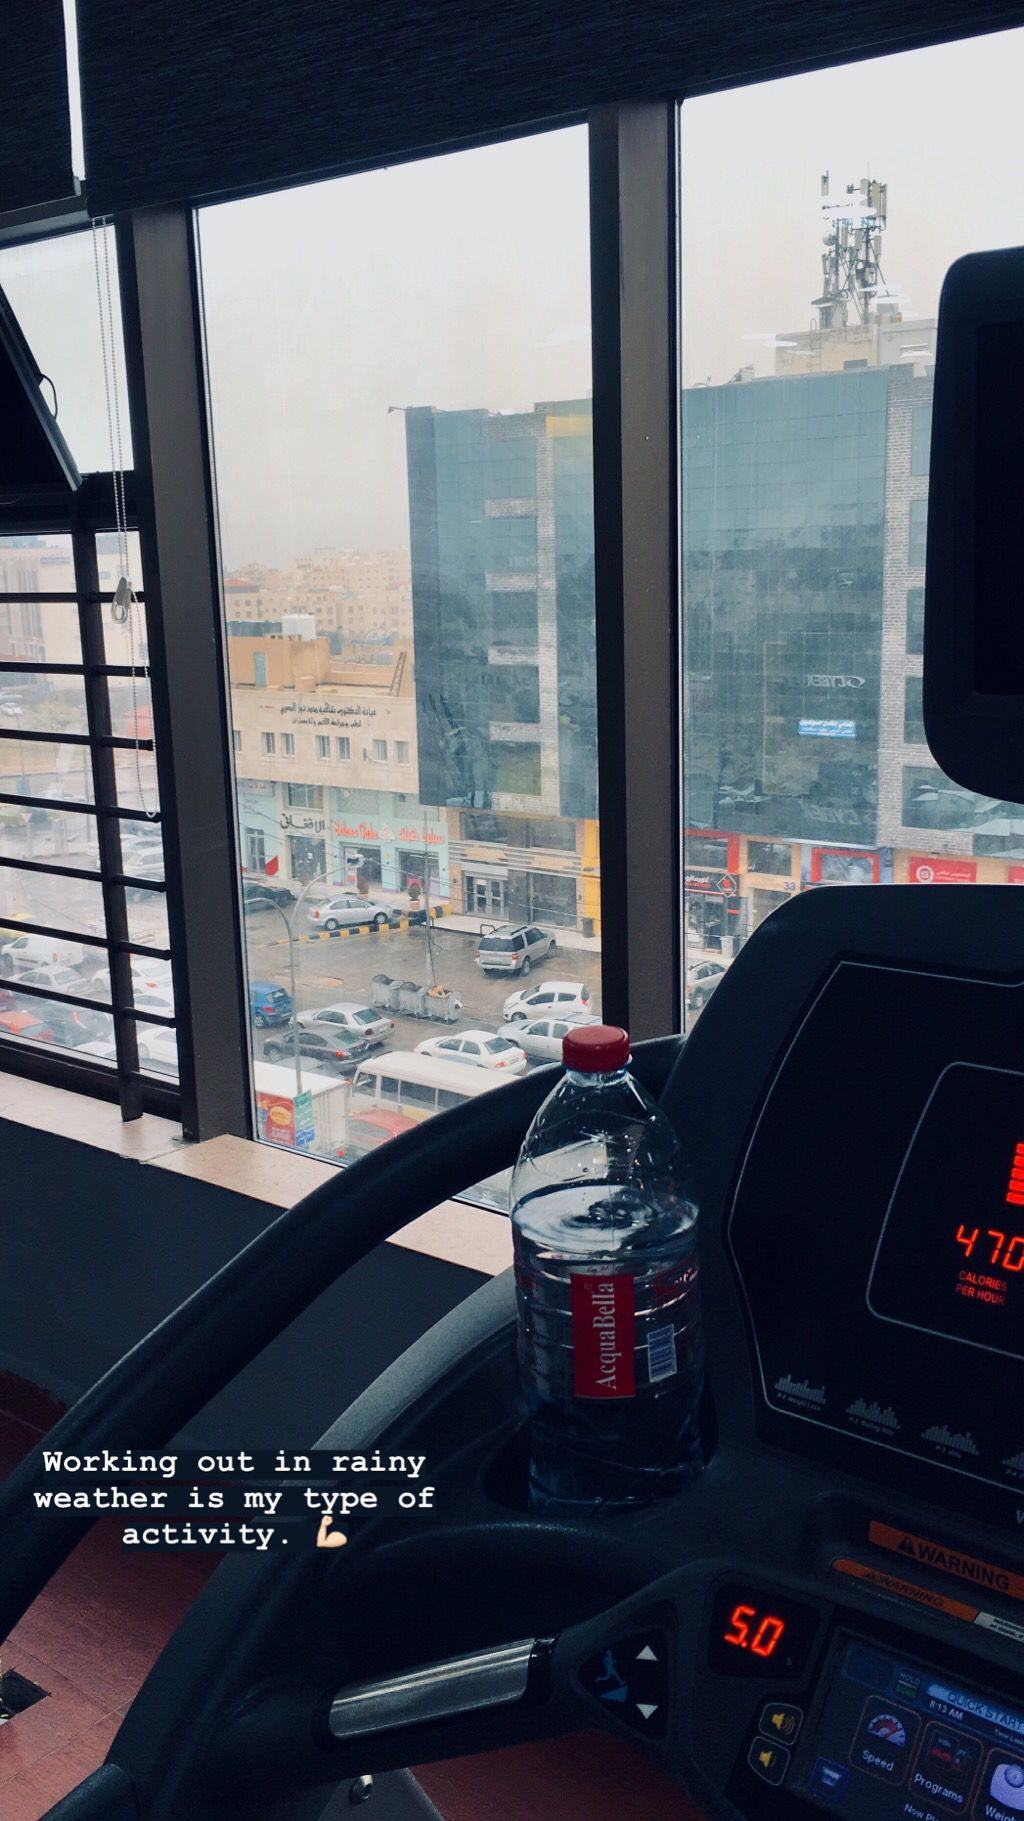 Working out in a rainy day is so therapeutic. #workout #gym #fitness #abs #healthyliving #health #he...